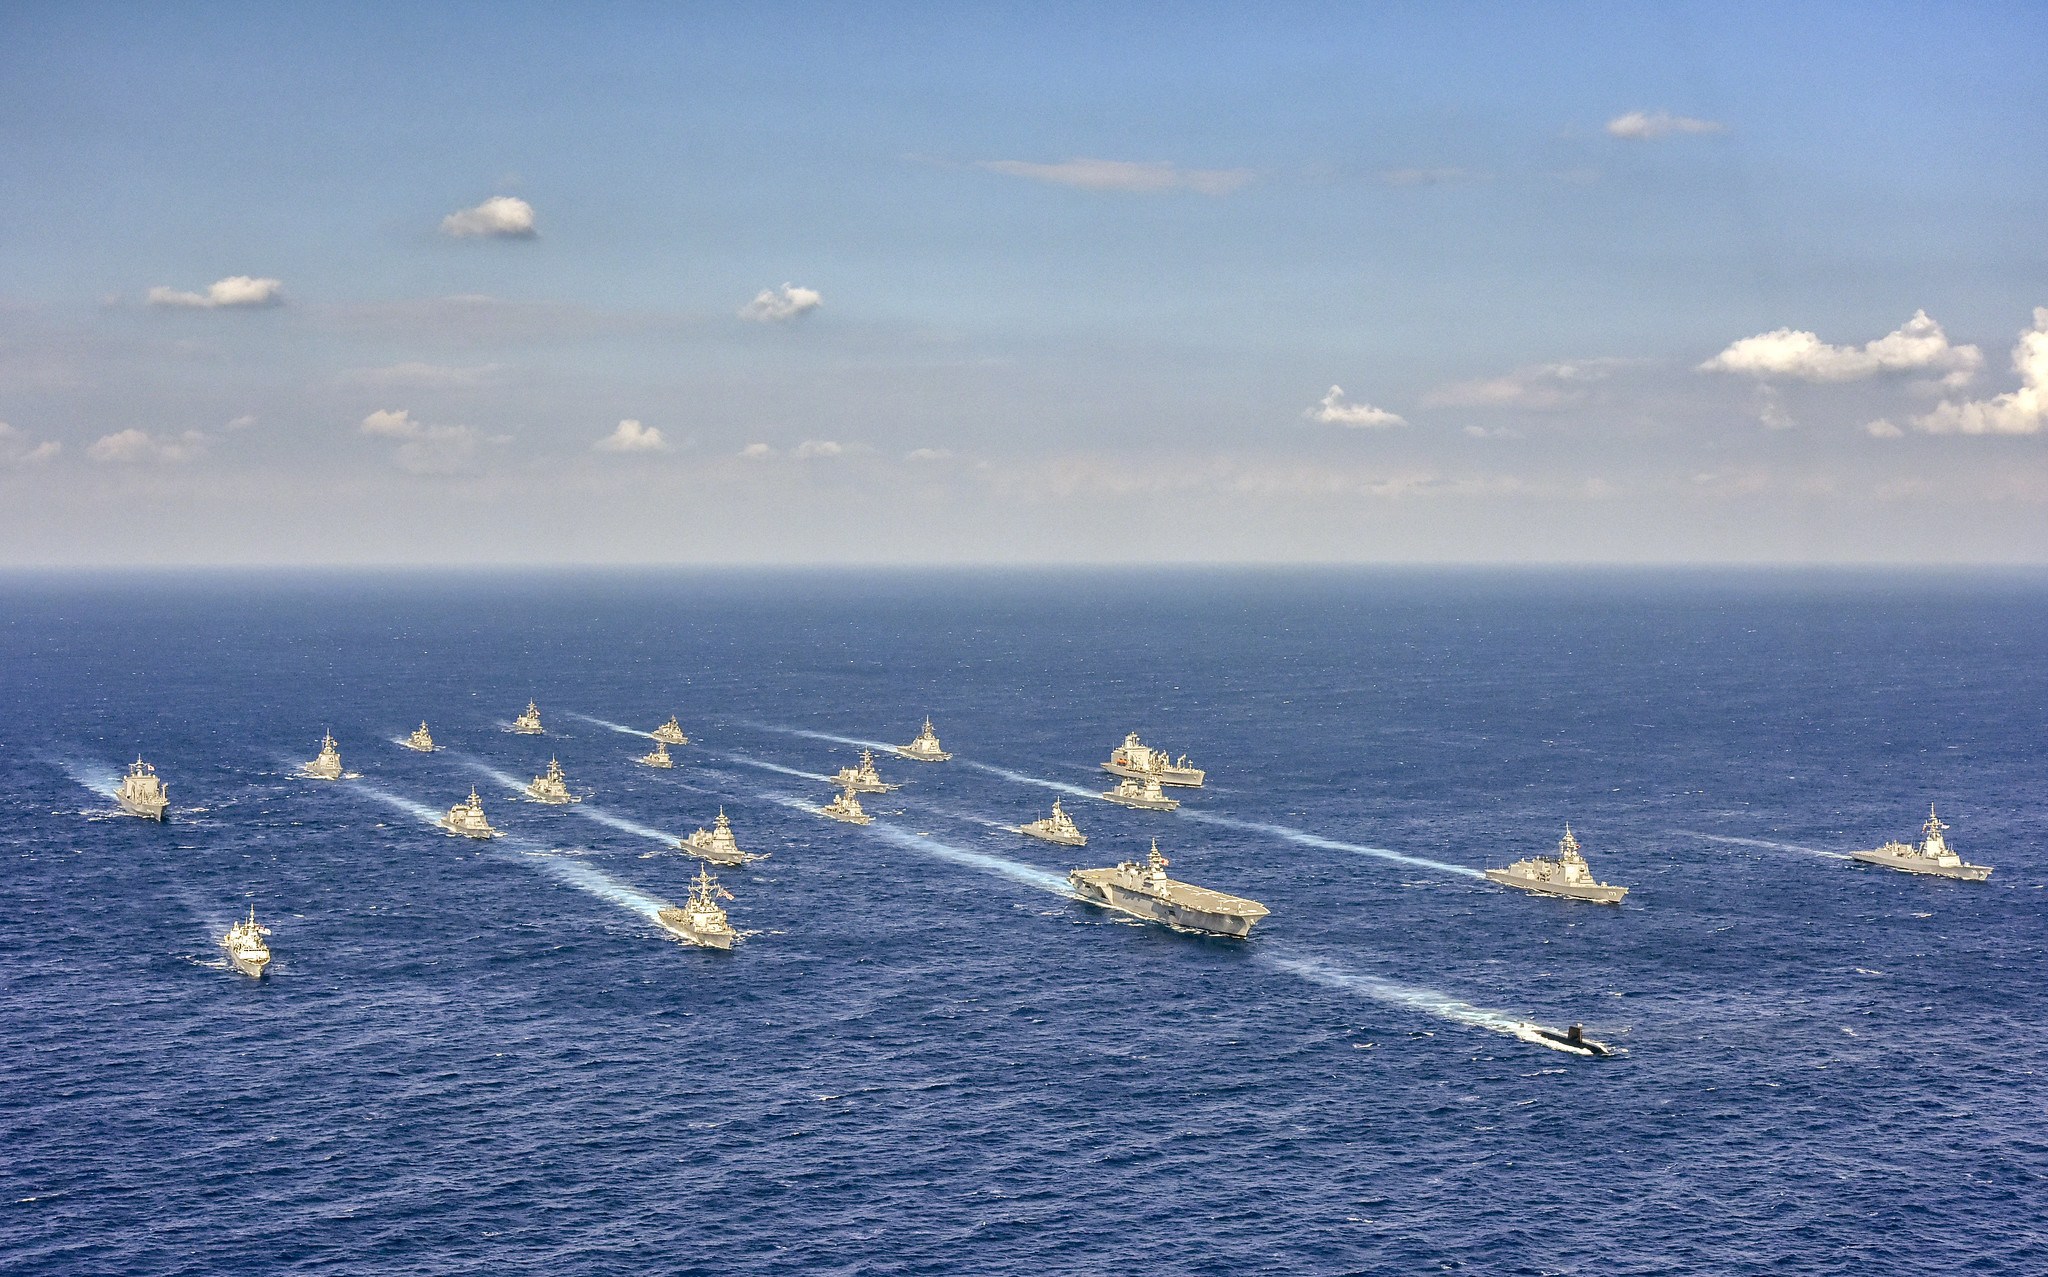 Ships from the U.S. Navy, Japan Maritime Self-Defense Force, Royal Australian Navy, and Royal Canadian Navy are underway in formation during Annual Exercise (ANNUALEX) 19 on Nov. 11 in the Philippine Sea. (Courtesy of Japan Maritime Self-Defense Force via U.S. Navy)